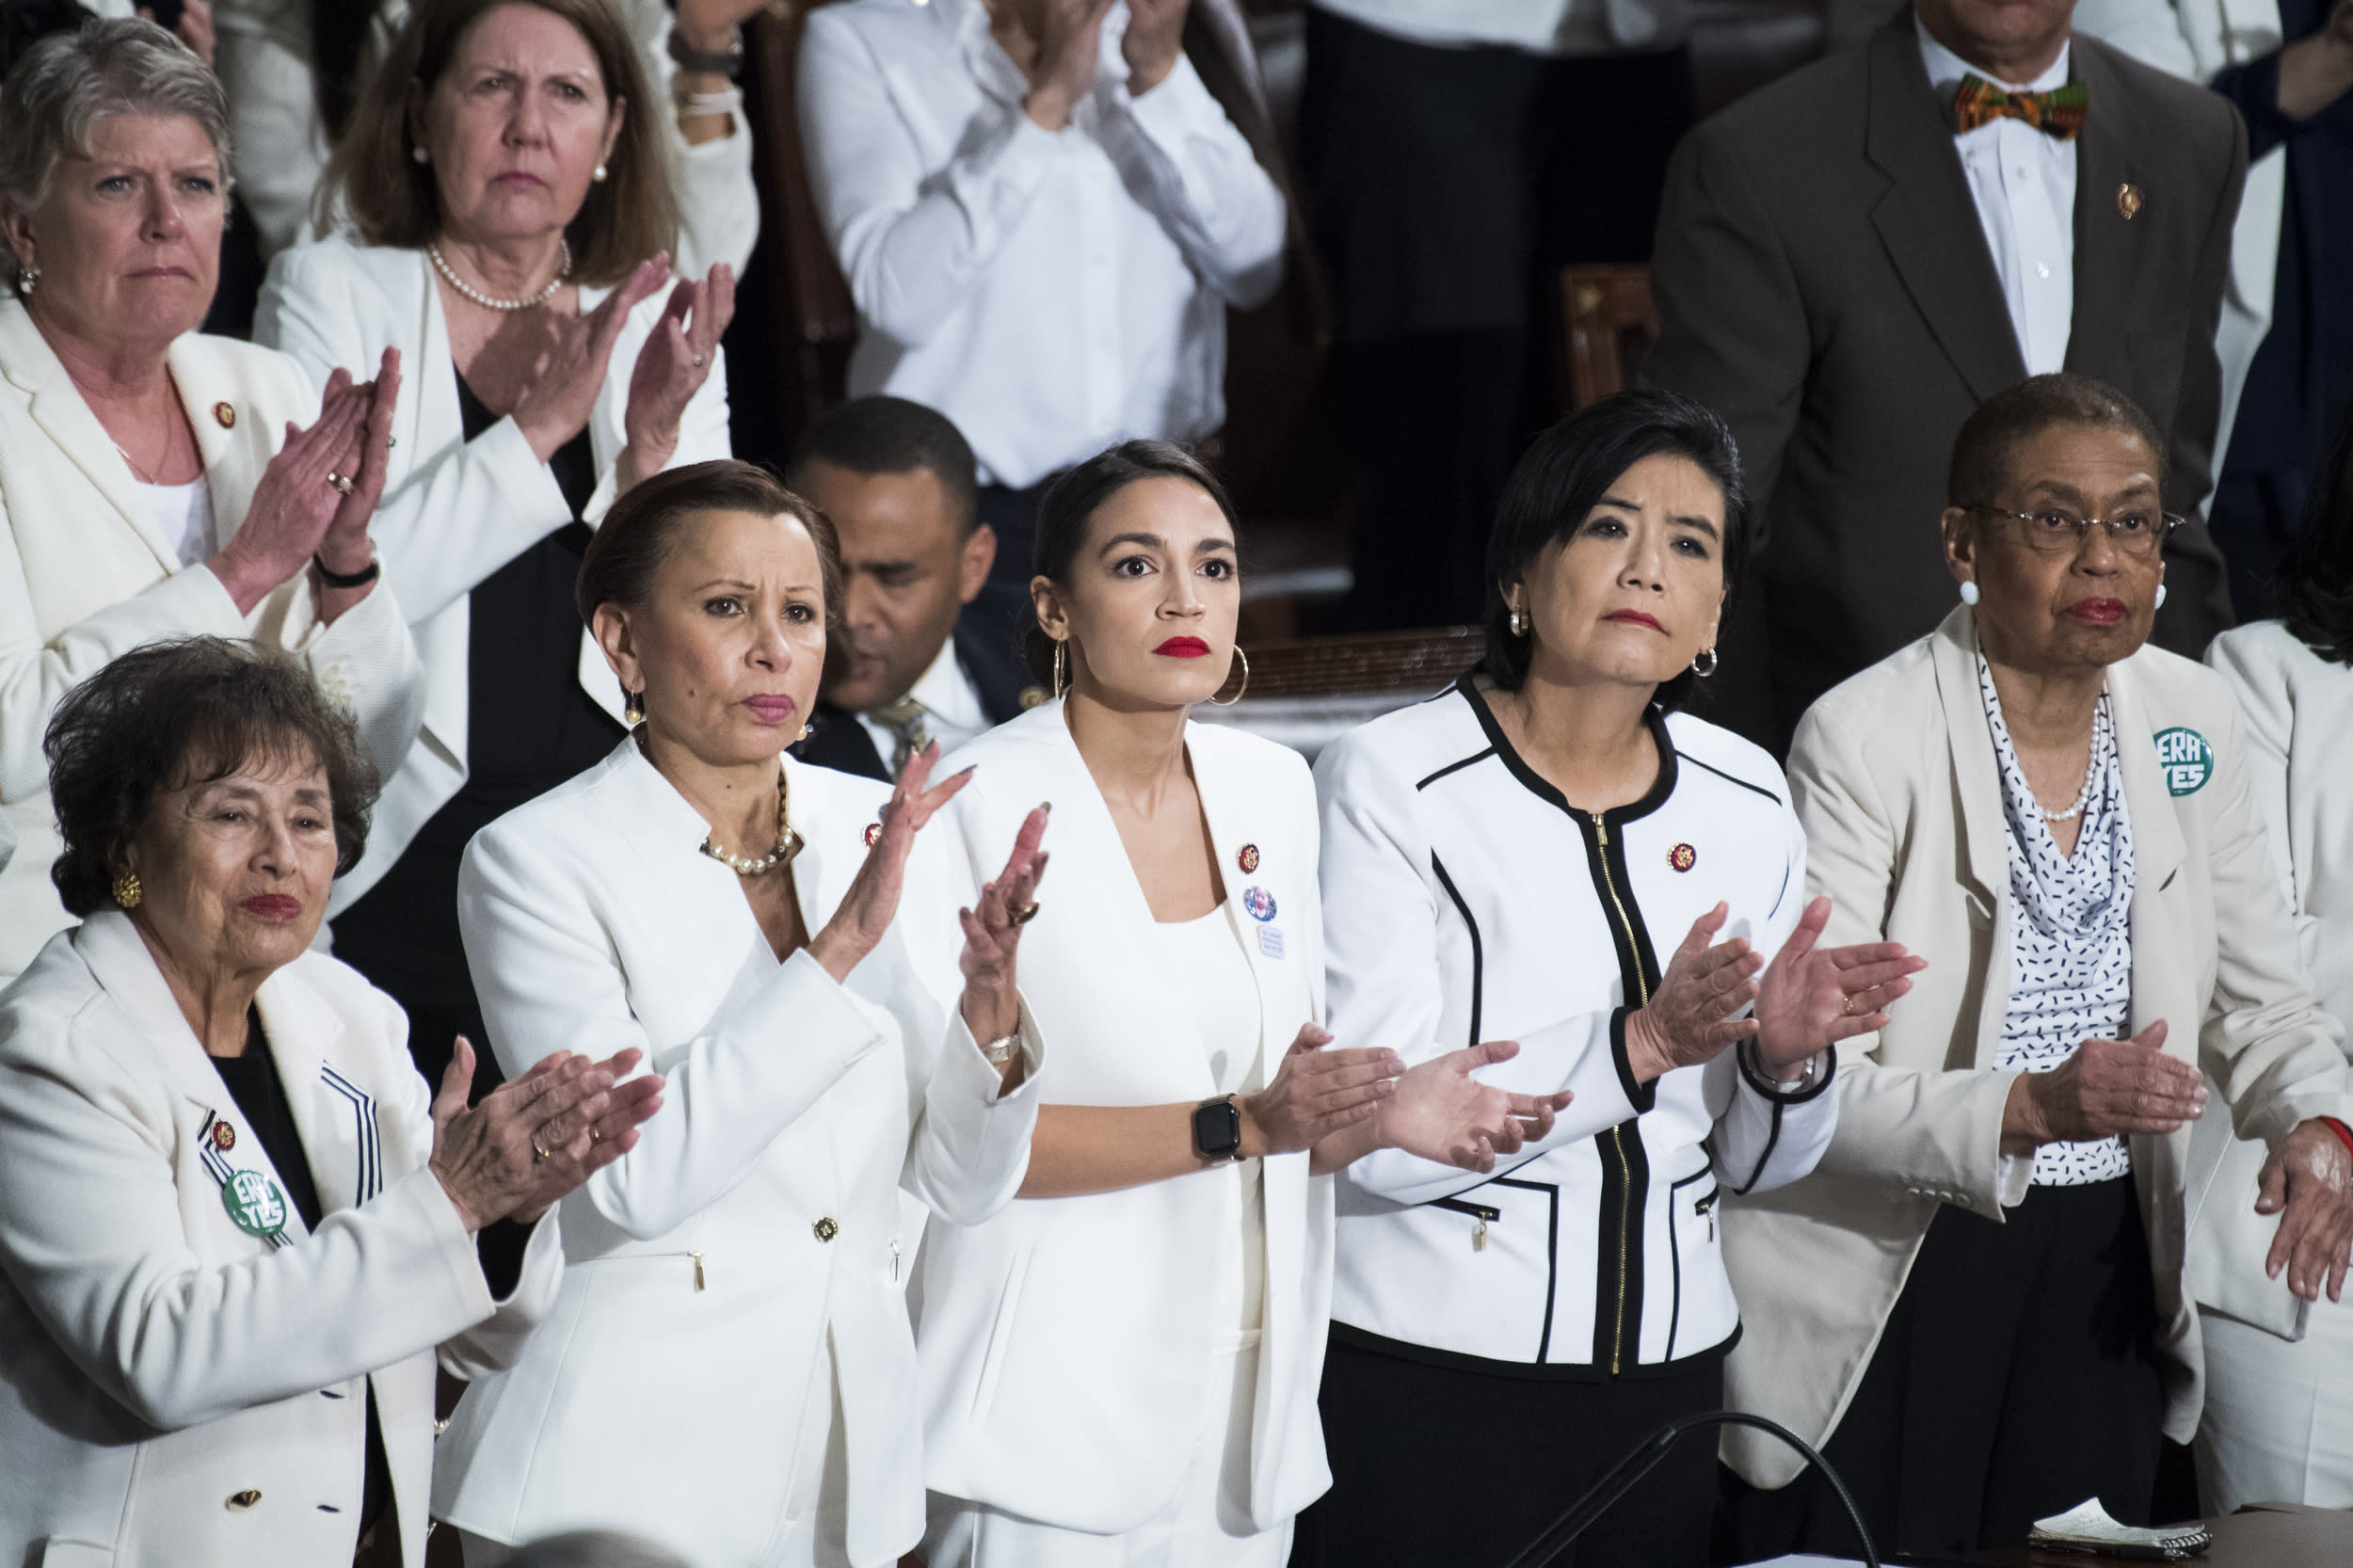 UNITED STATES - FEBRUARY 05: First row from left, Reps. Nita Lowey, D-N.Y., Nydia Velazquez, D-N.Y., Alexandria Ocasio-Cortez, D-N.Y., Judy Chu, D-Calif., and Del. Eleanor Holmes Norton, D-D.C., are seen in the House Chamber as President Donald Trump delivered his State of the Union address on Tuesday, February 5, 2019. (Photo By Tom Williams/CQ Roll Call)